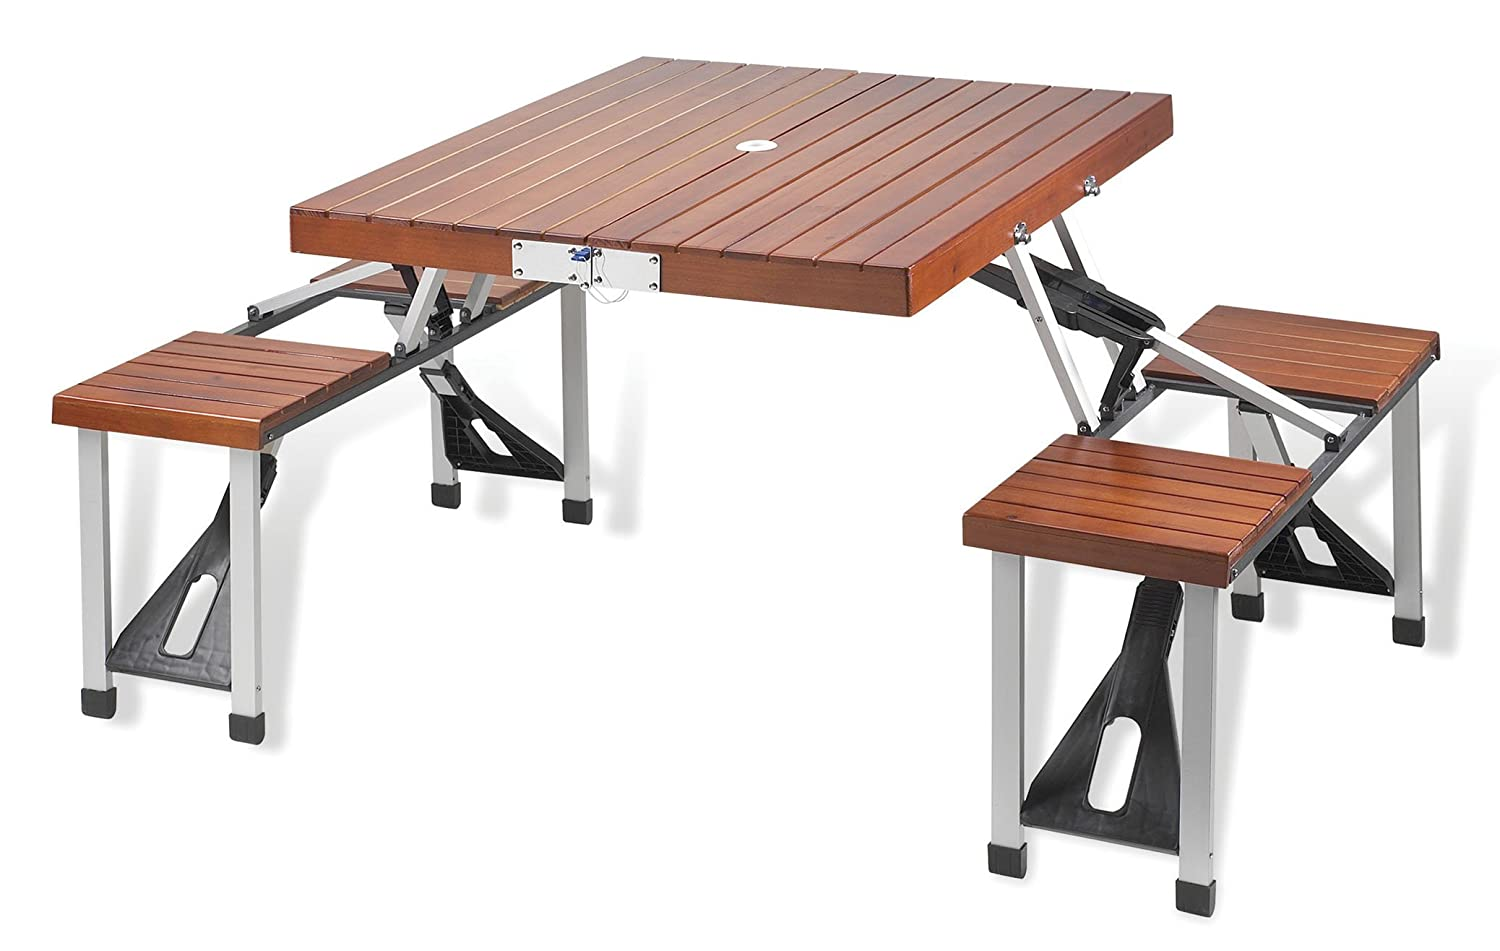 Amazon.com: Picnic At Ascot Portable Picnic Table Set: Kitchen U0026 Dining